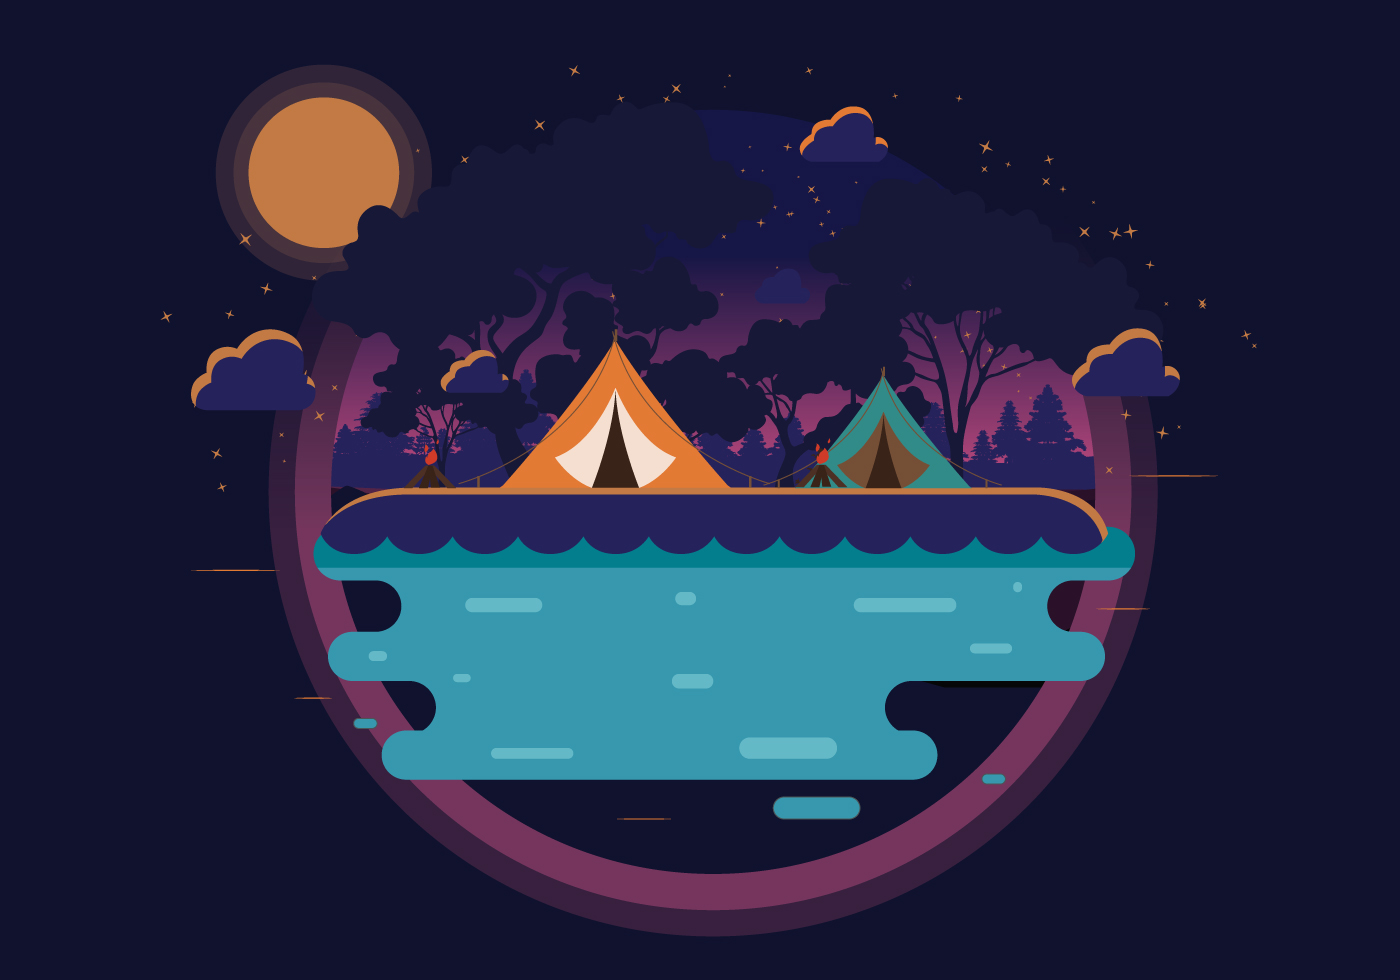 Night Camping in Mountain Vector - Download Free Vectors ...